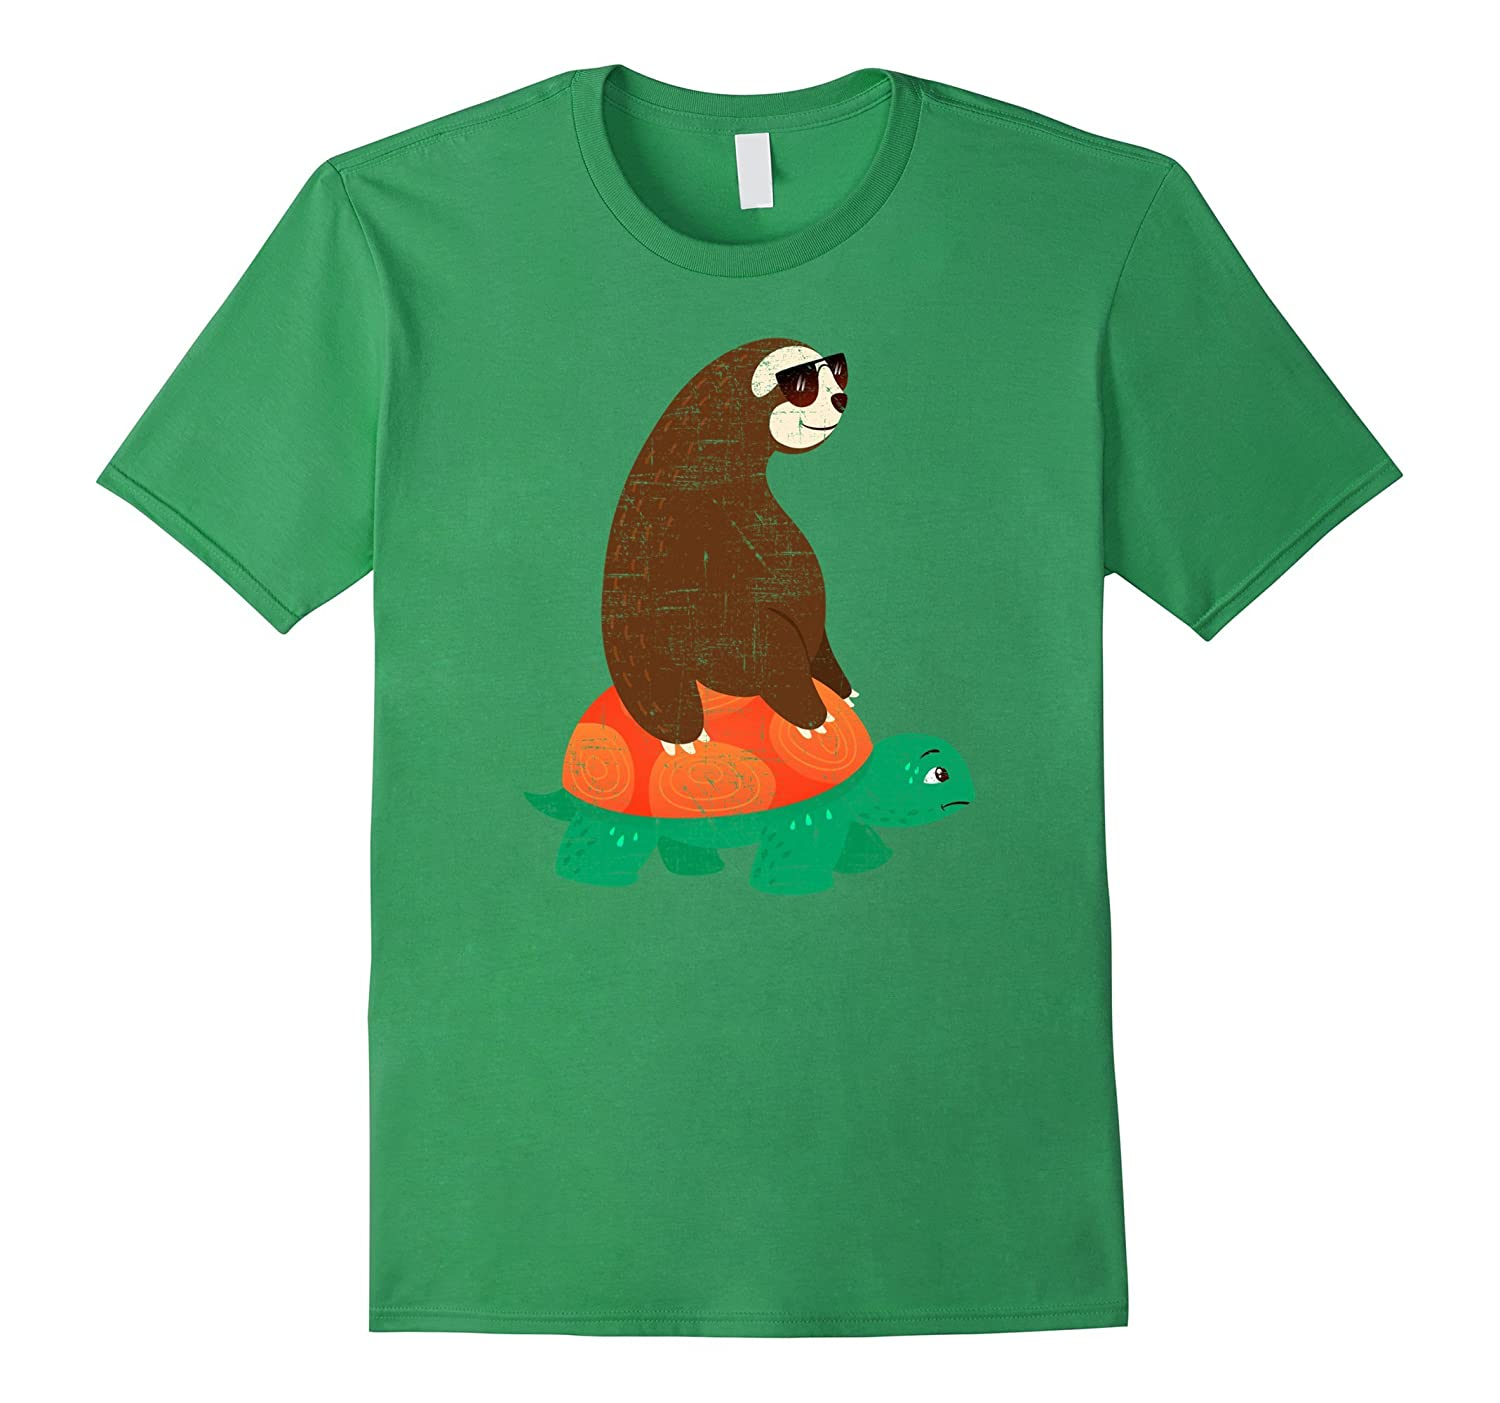 cool sloth with sunglasses riding on tortoise t shirt hntee com